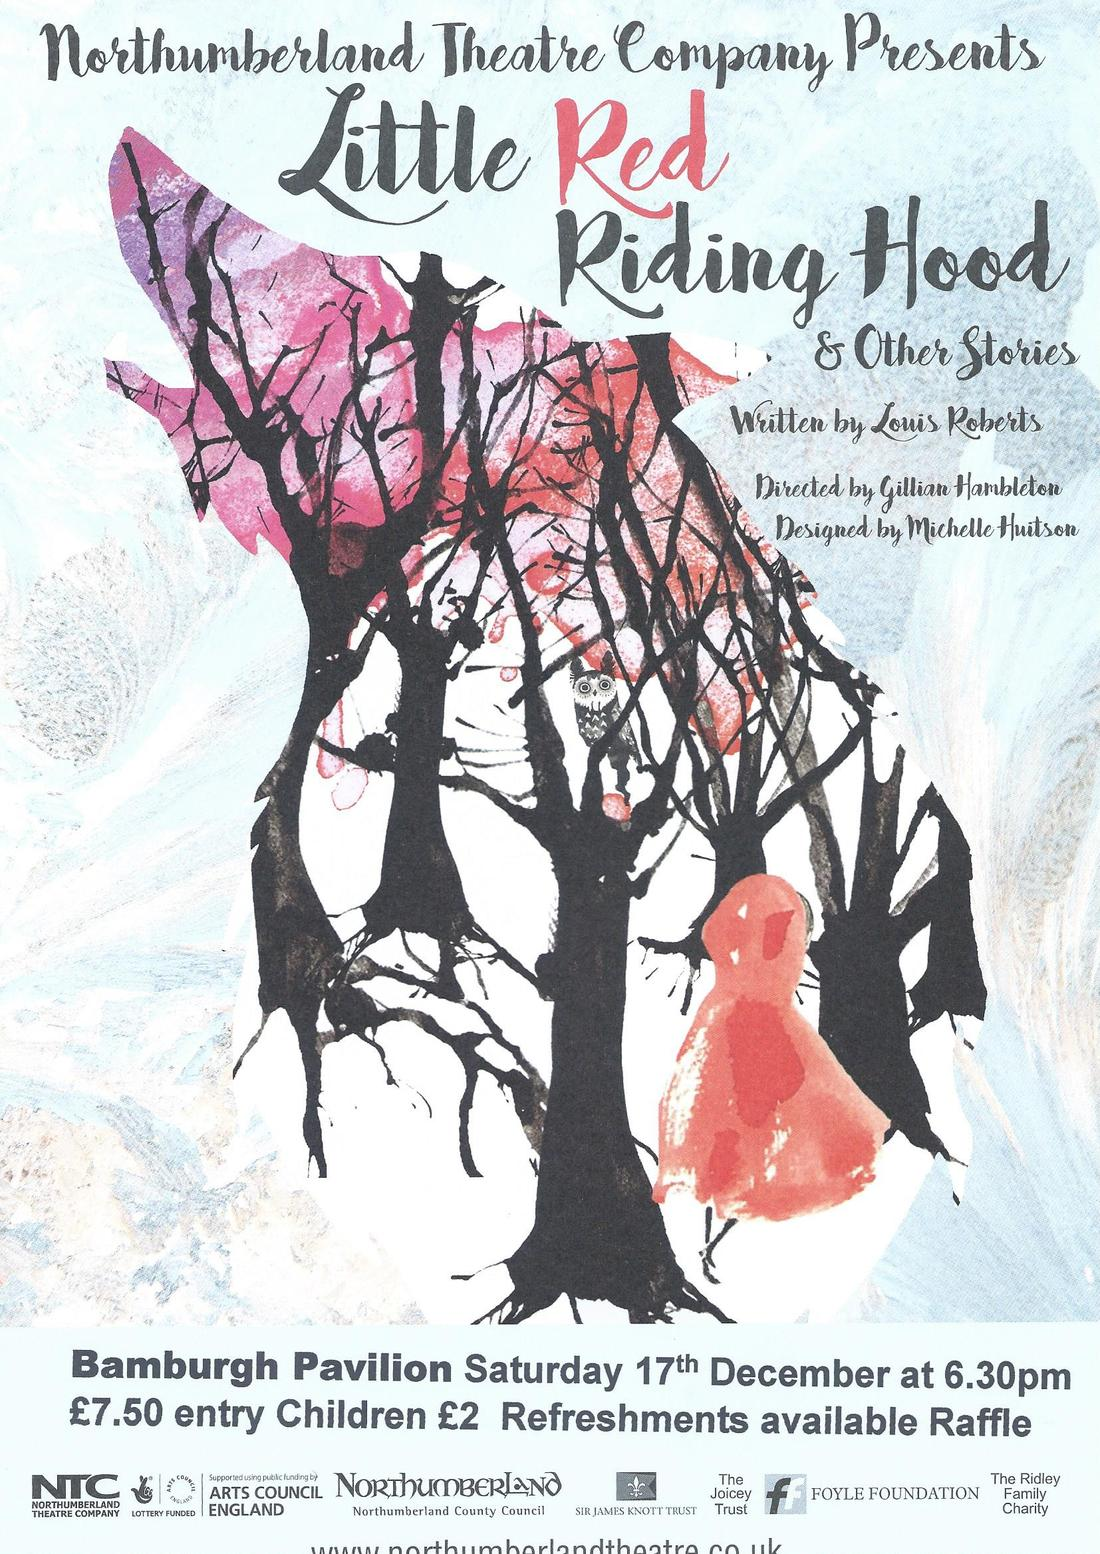 Northumberland Theatre Company Presents Little Red Riding Hood